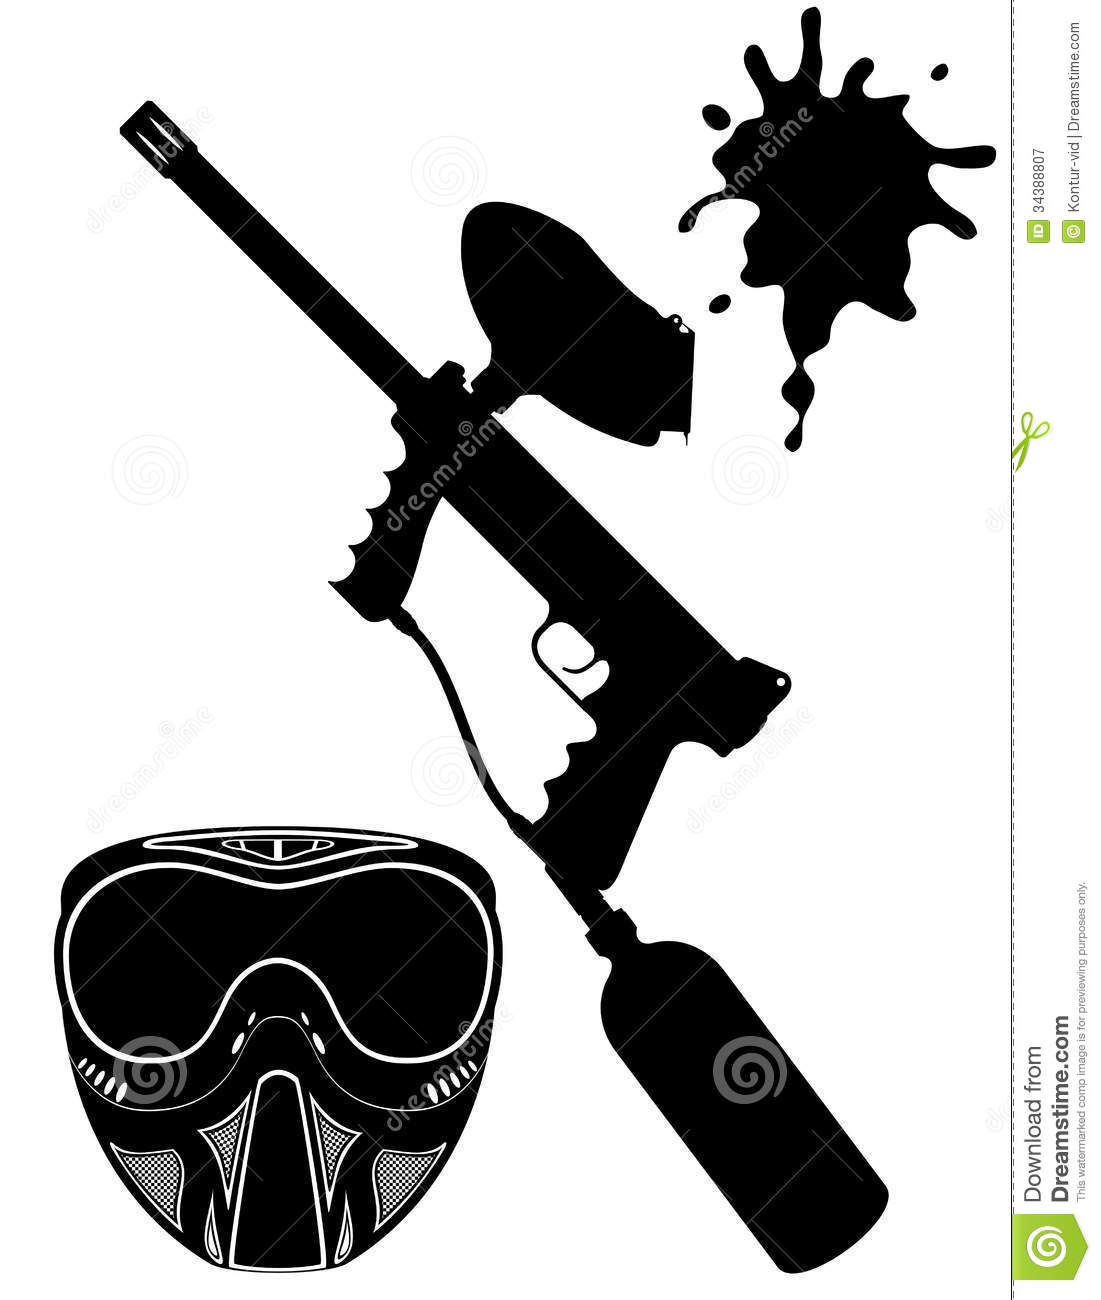 Paintball Vector Clipart #1 - Paintball Clip Art